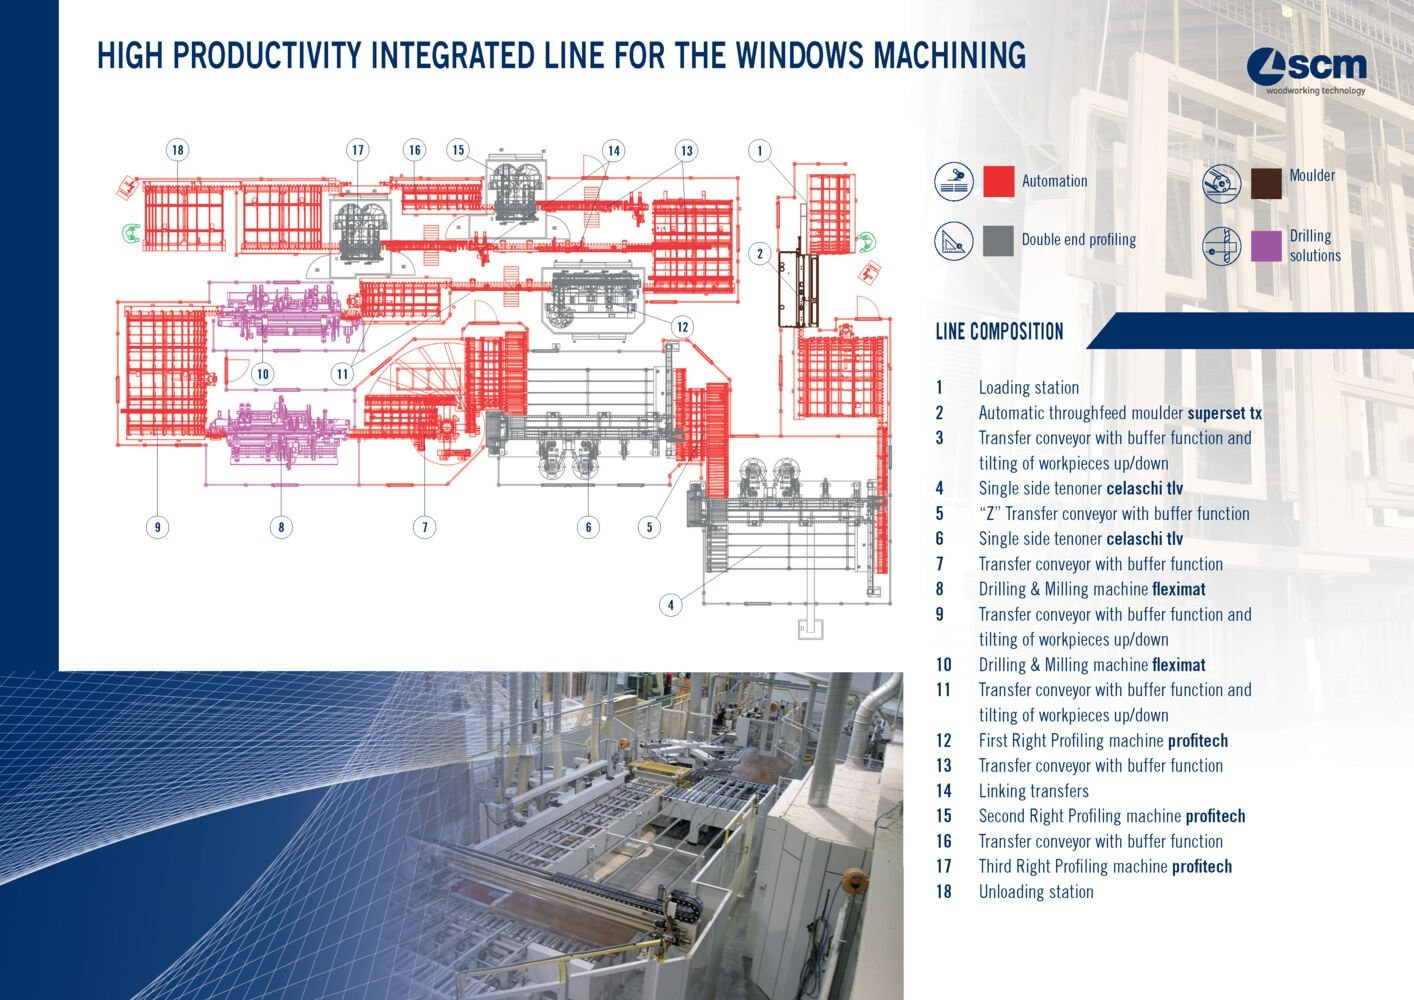 High productivity integrated line for the windows machining